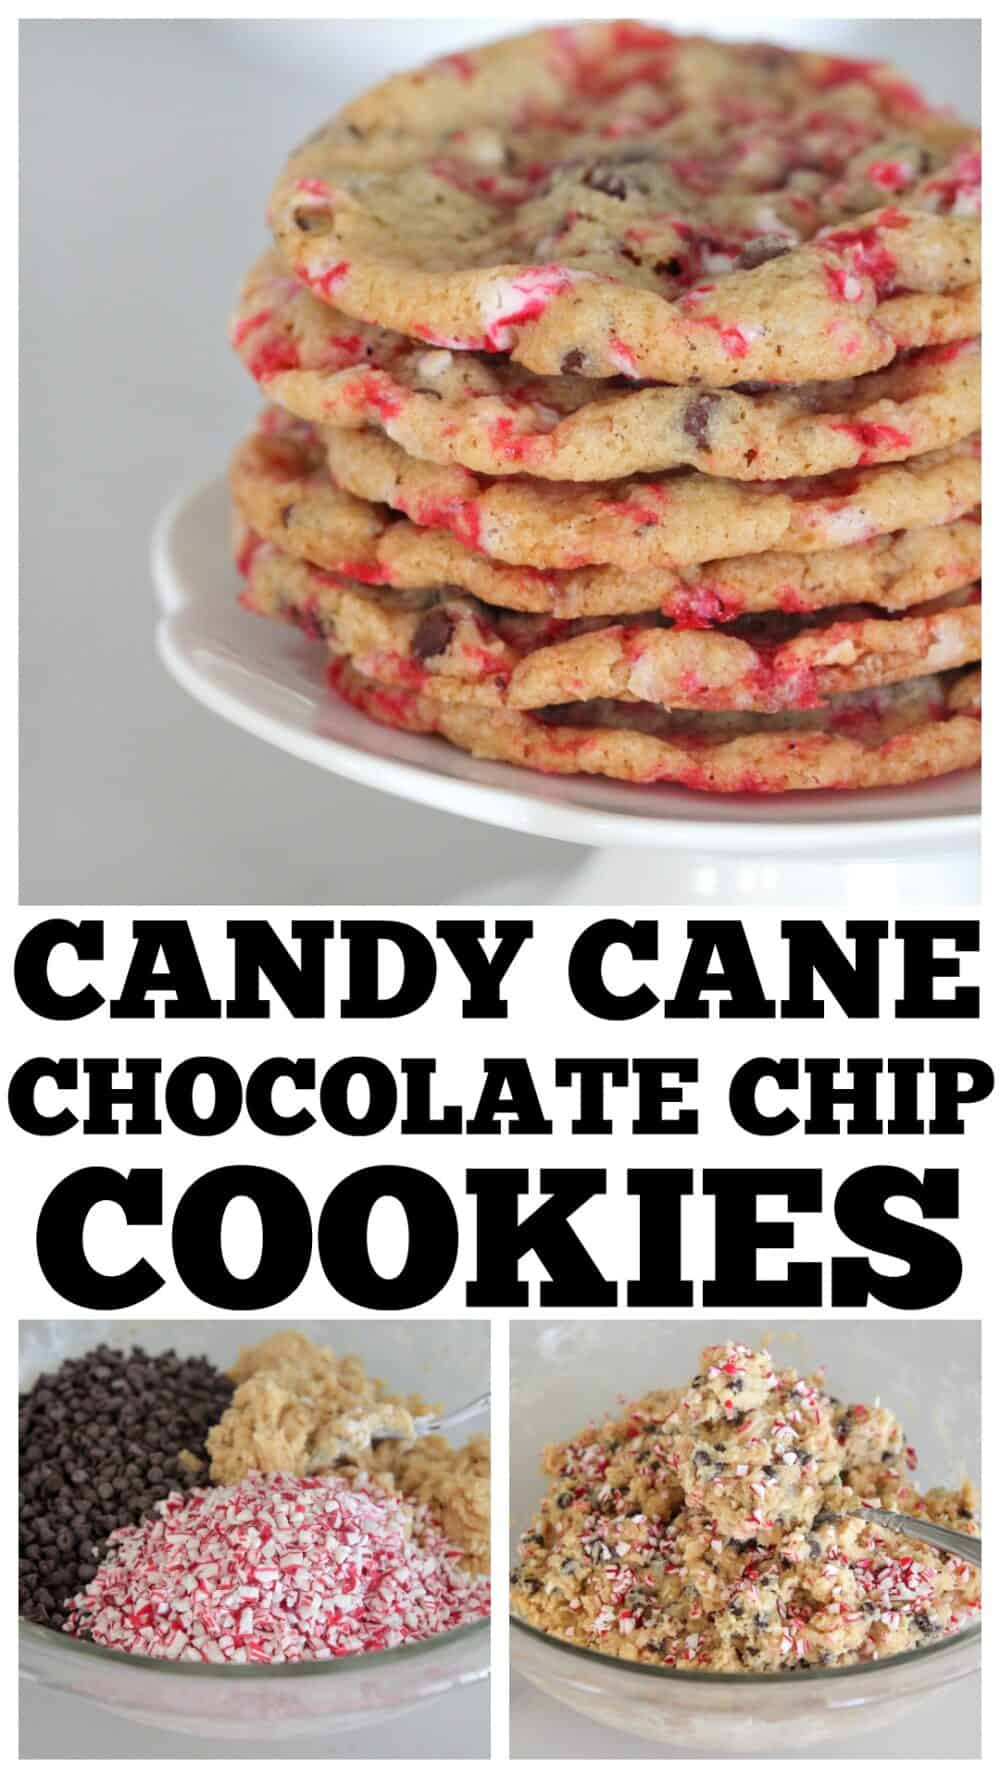 photo collage of candy cane cookies